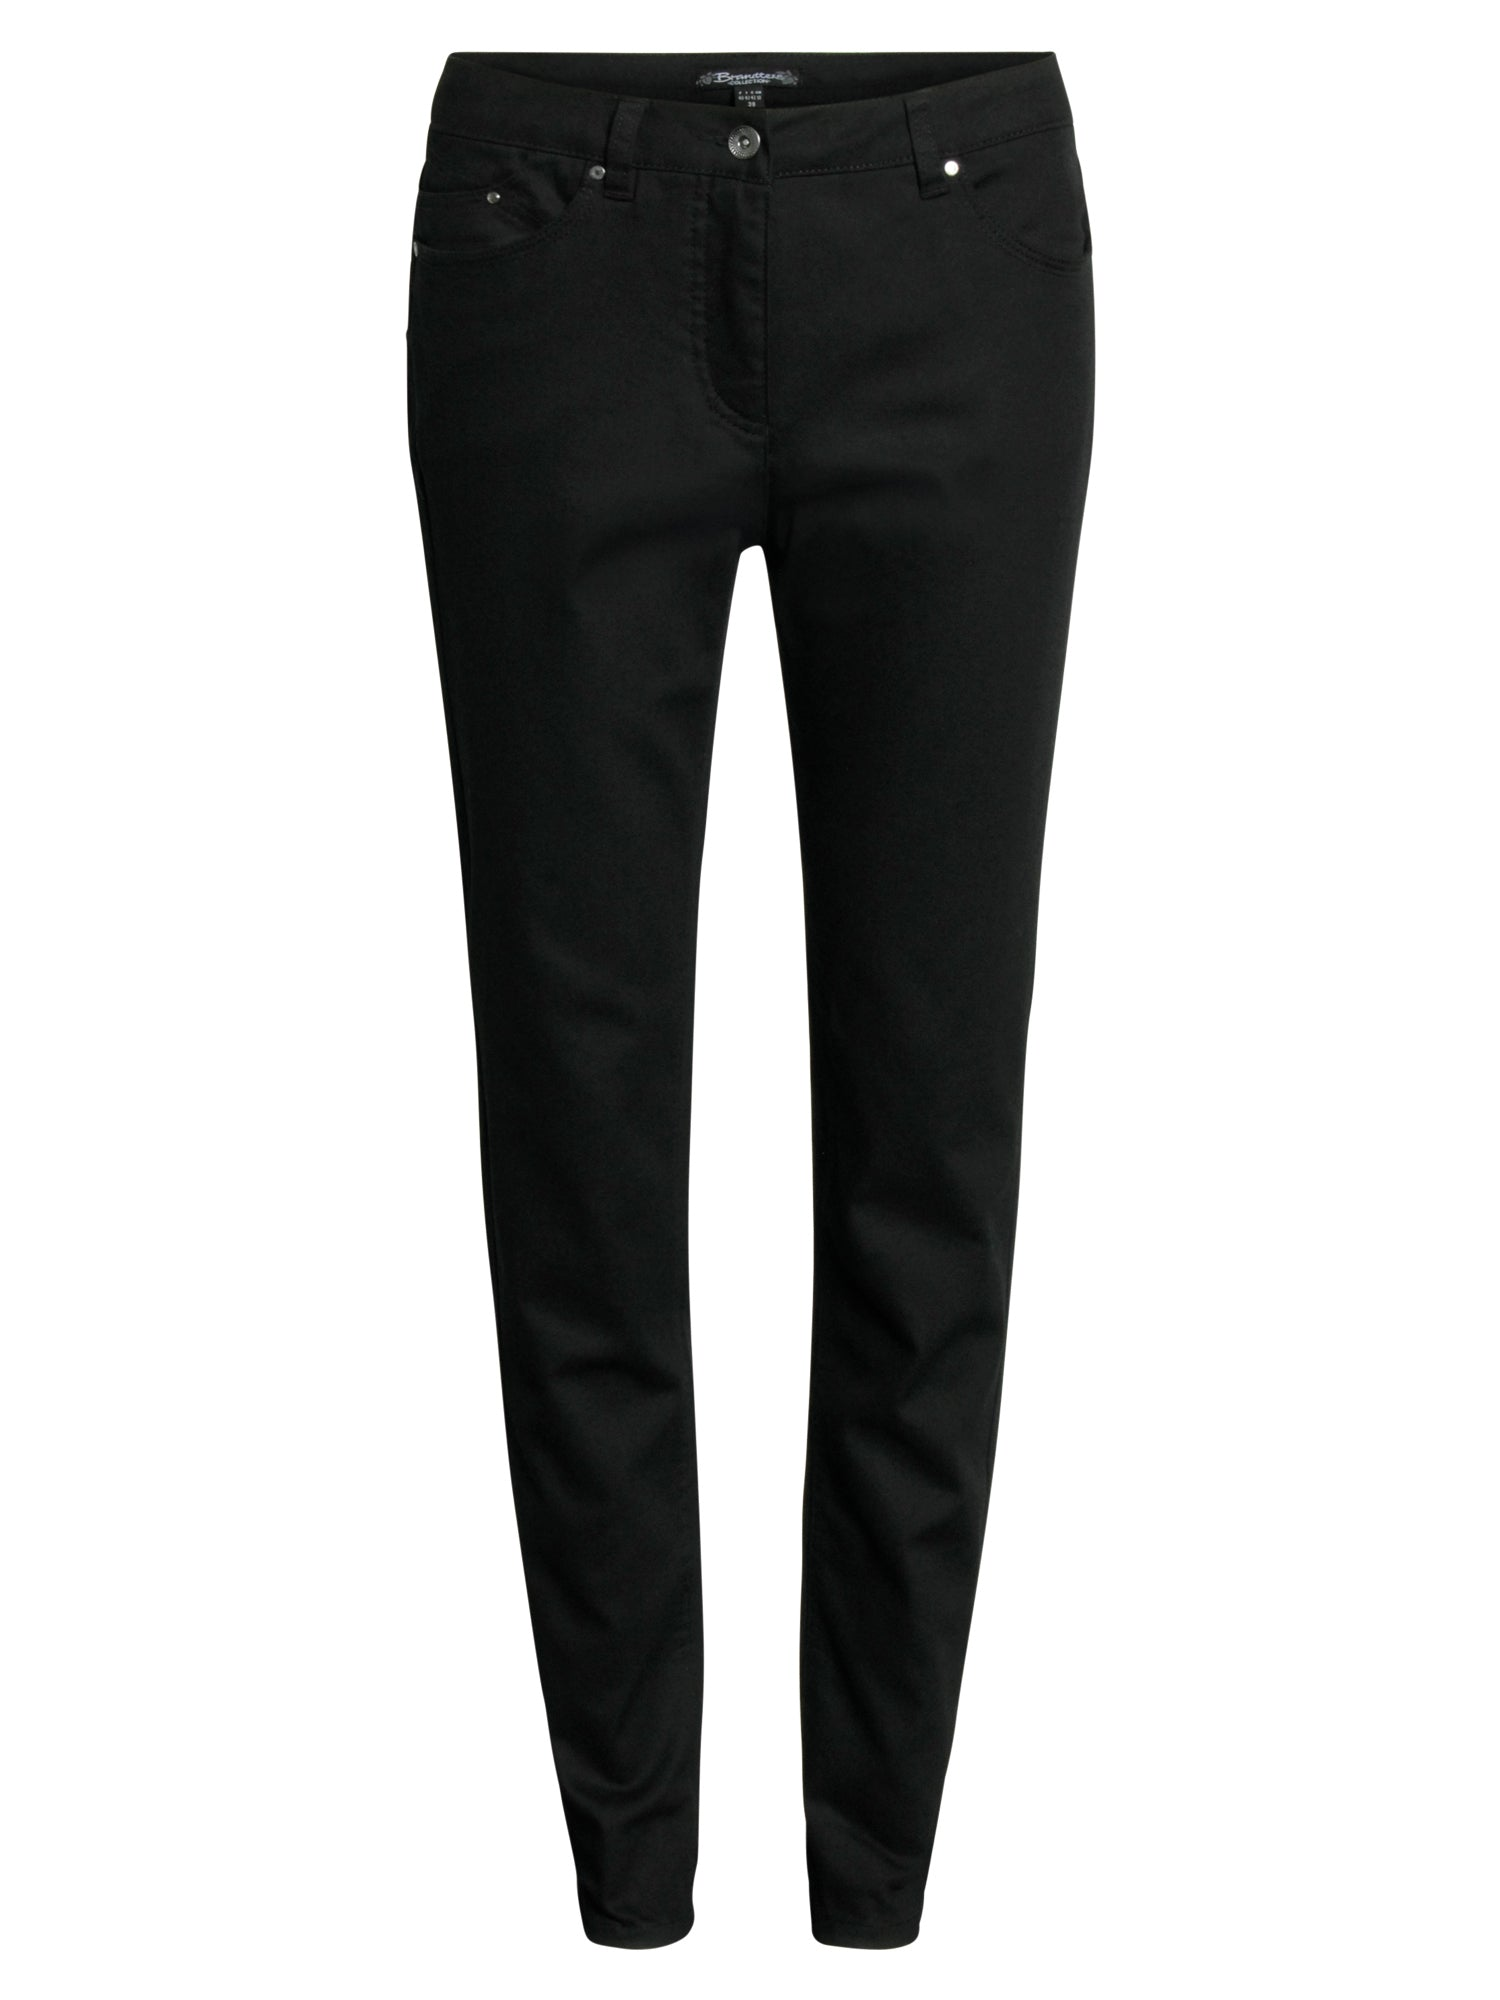 Image of   Jeans fra Victoria - Black